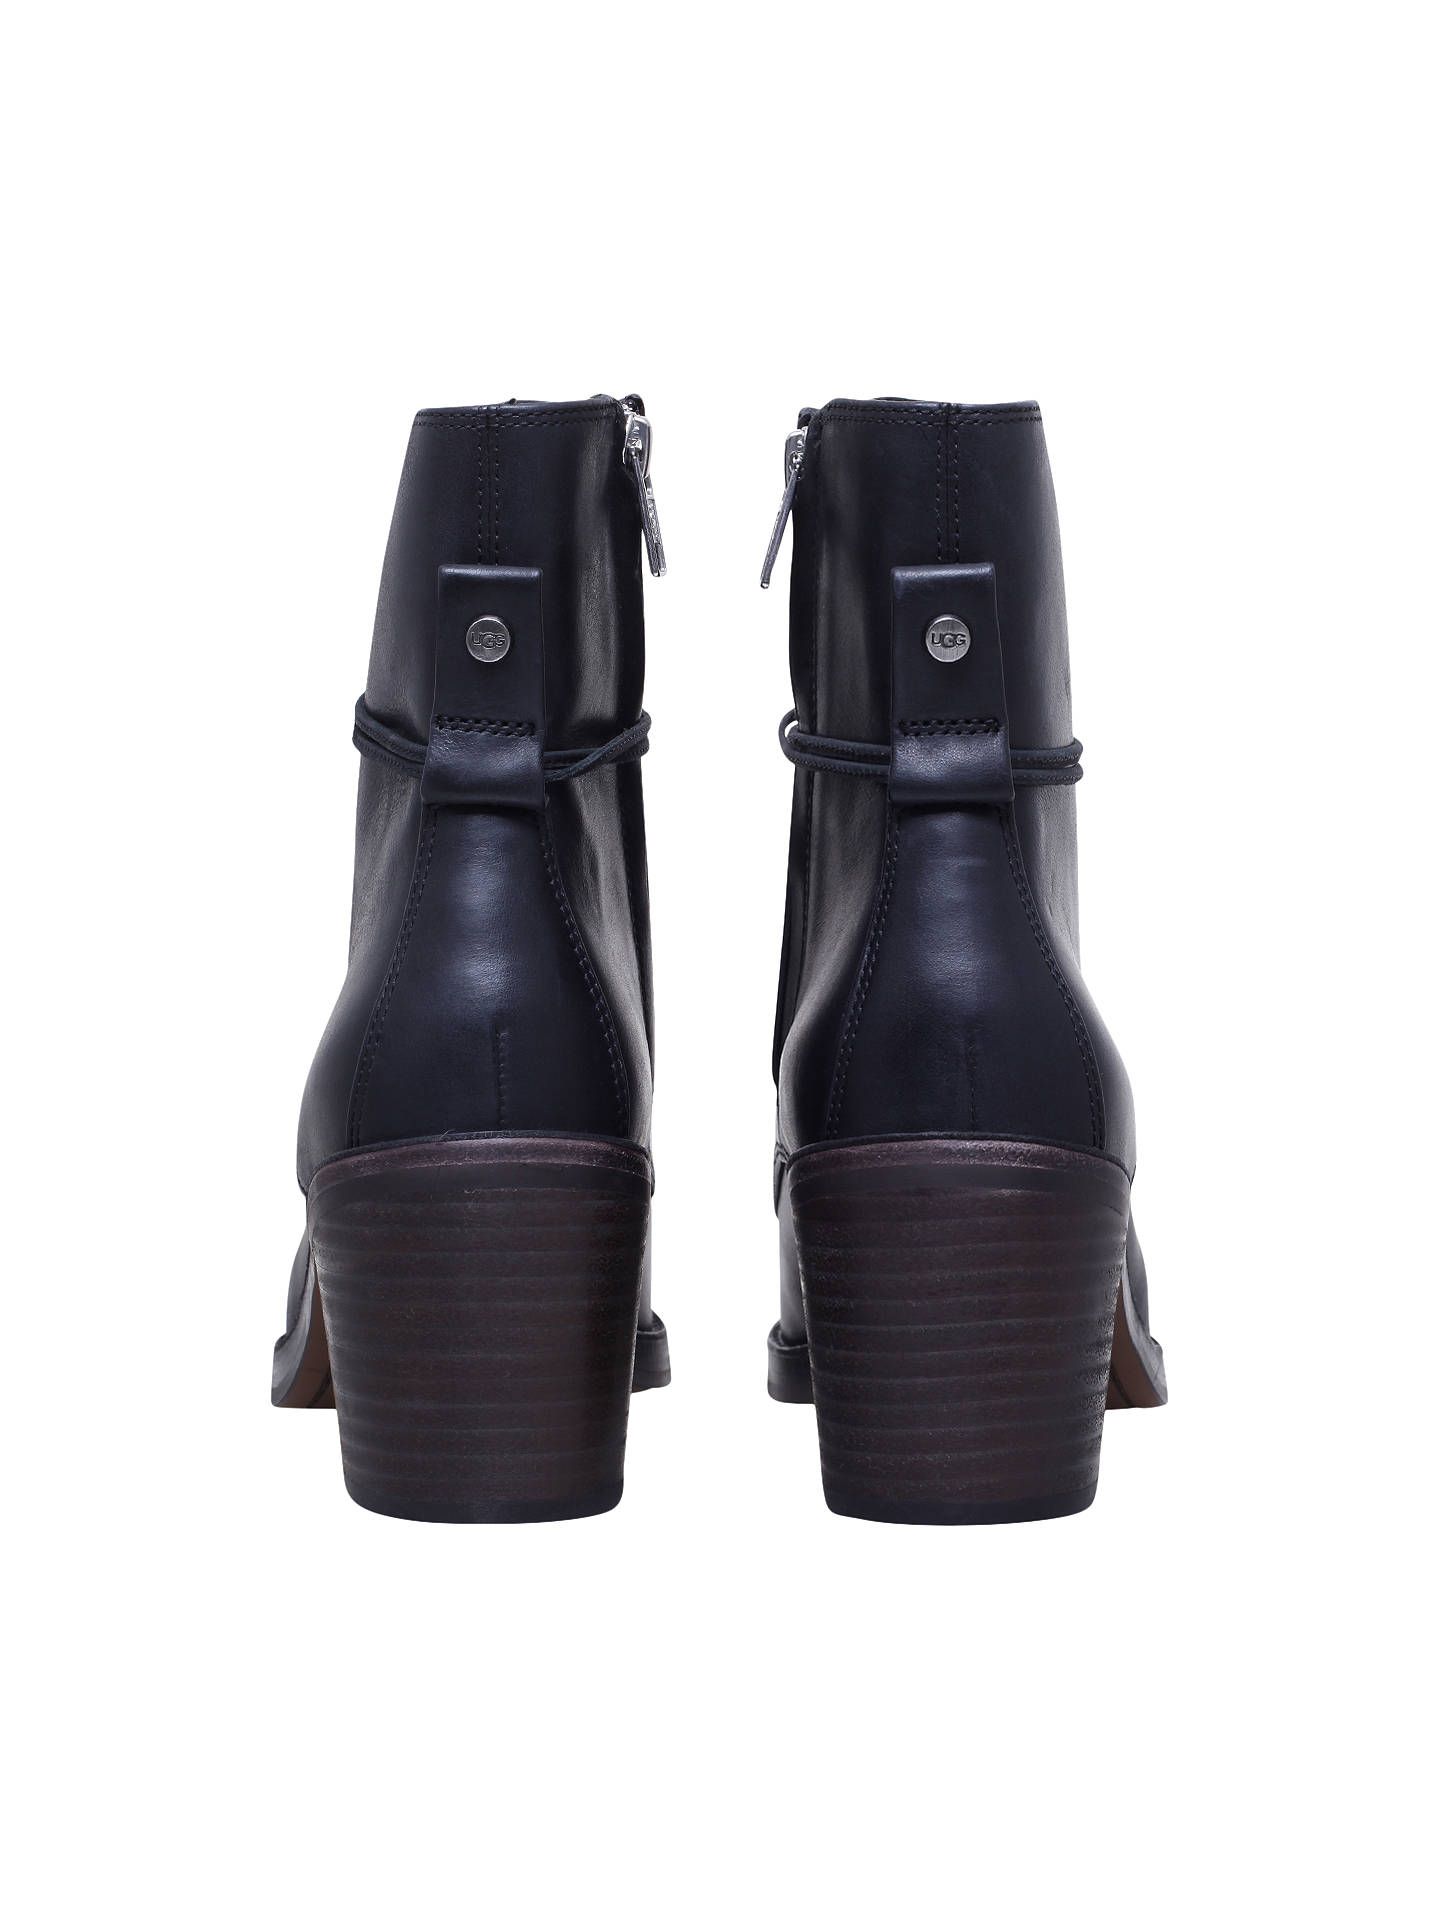 d1ec9a5d3bb UGG Oriana Lace Up Ankle Boots, Black Leather at John Lewis & Partners